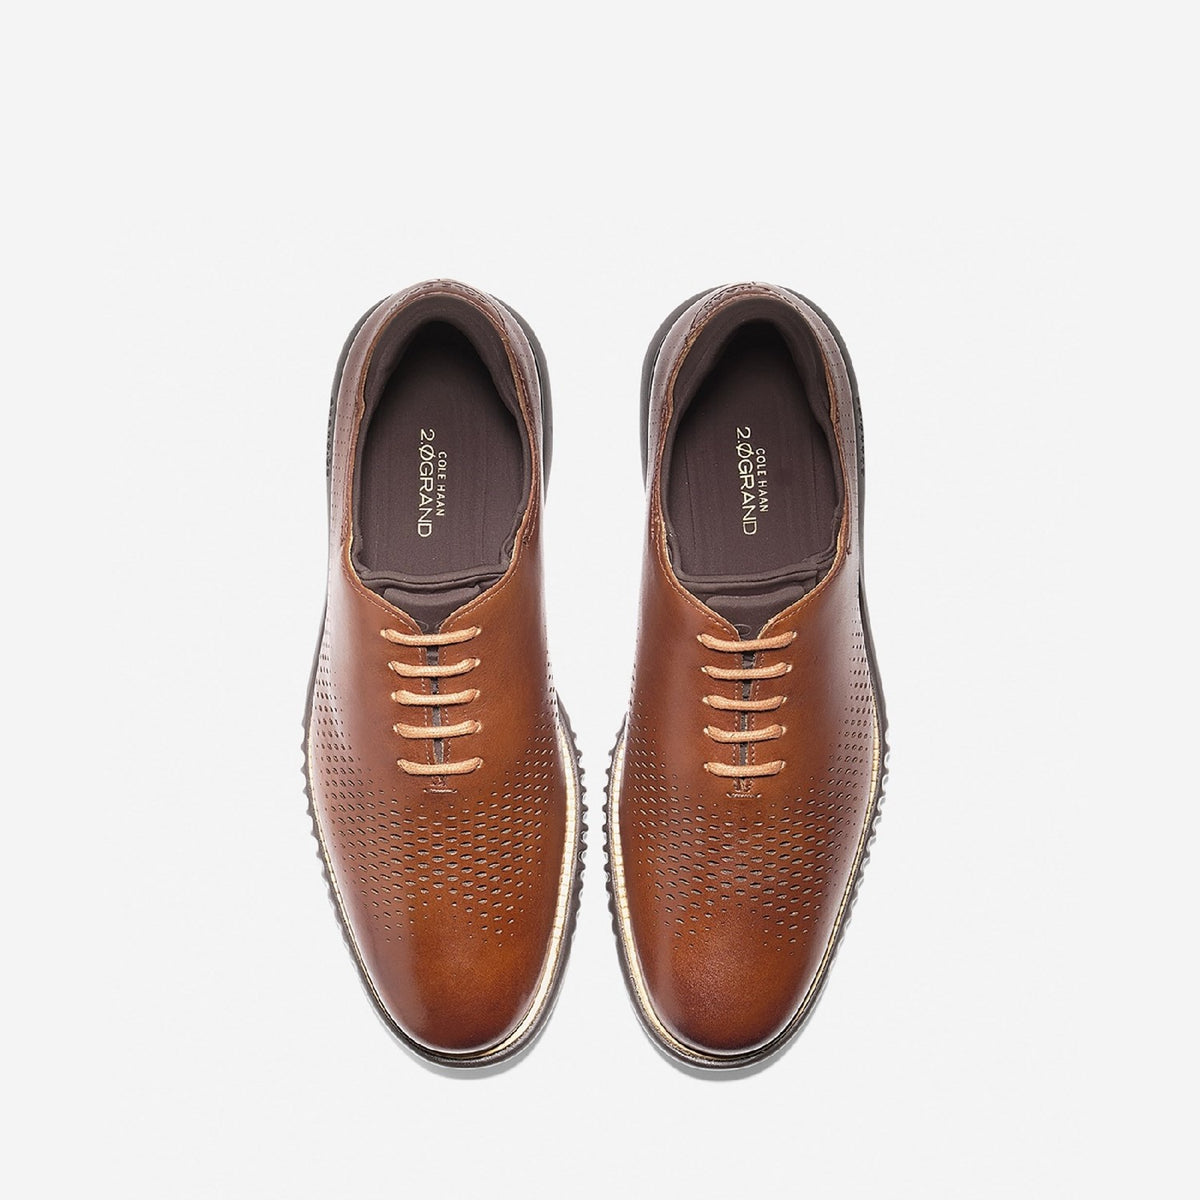 Men's 2.ZERØGRAND Laser Wing Oxford Lace Up Shoe Britsh Tan/Java